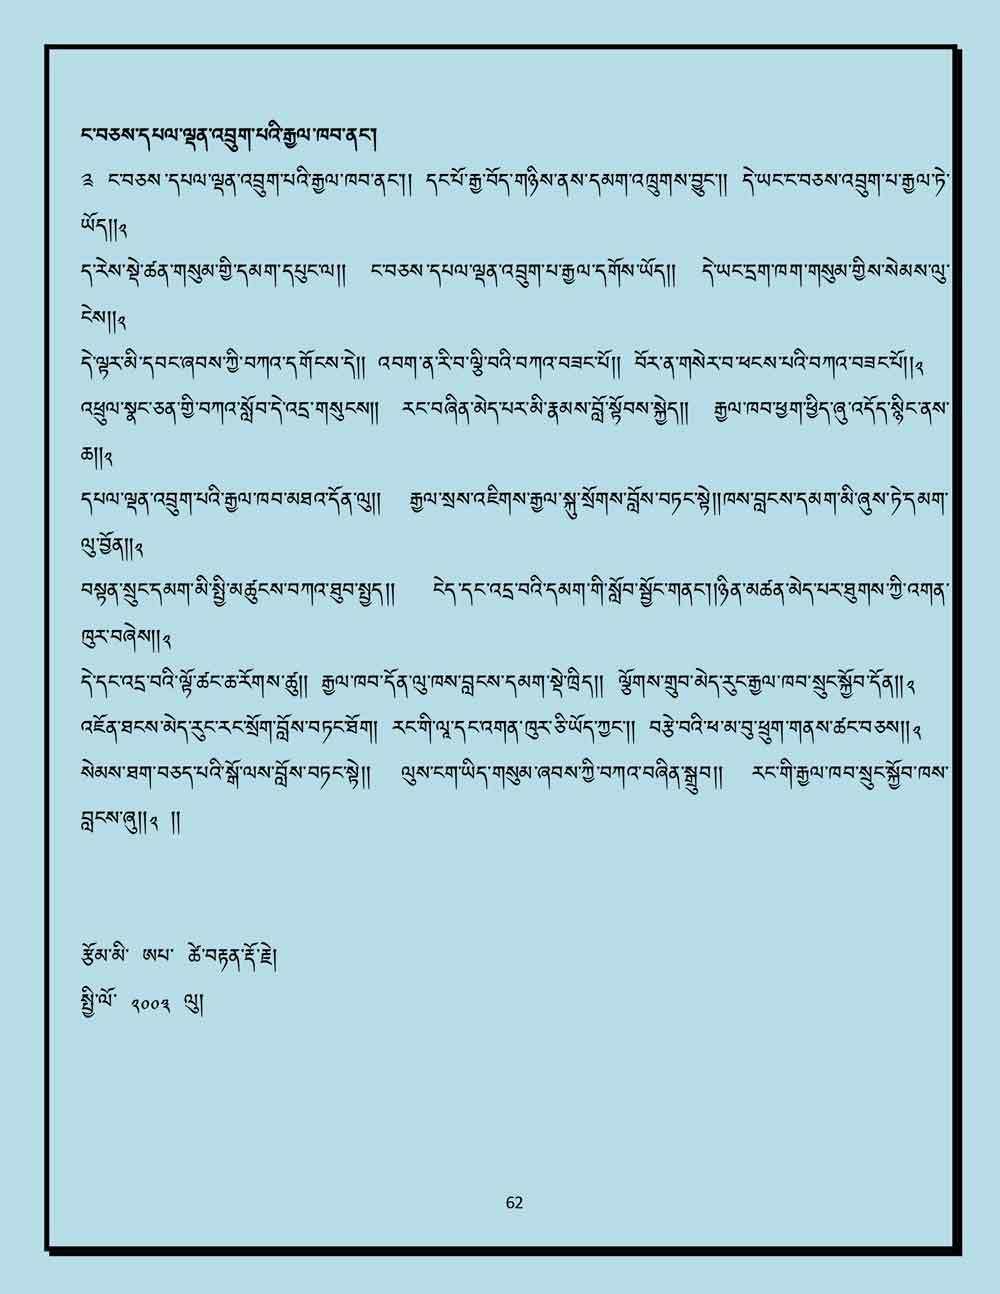 Ap-Tseten-Lyrics-62.jpg